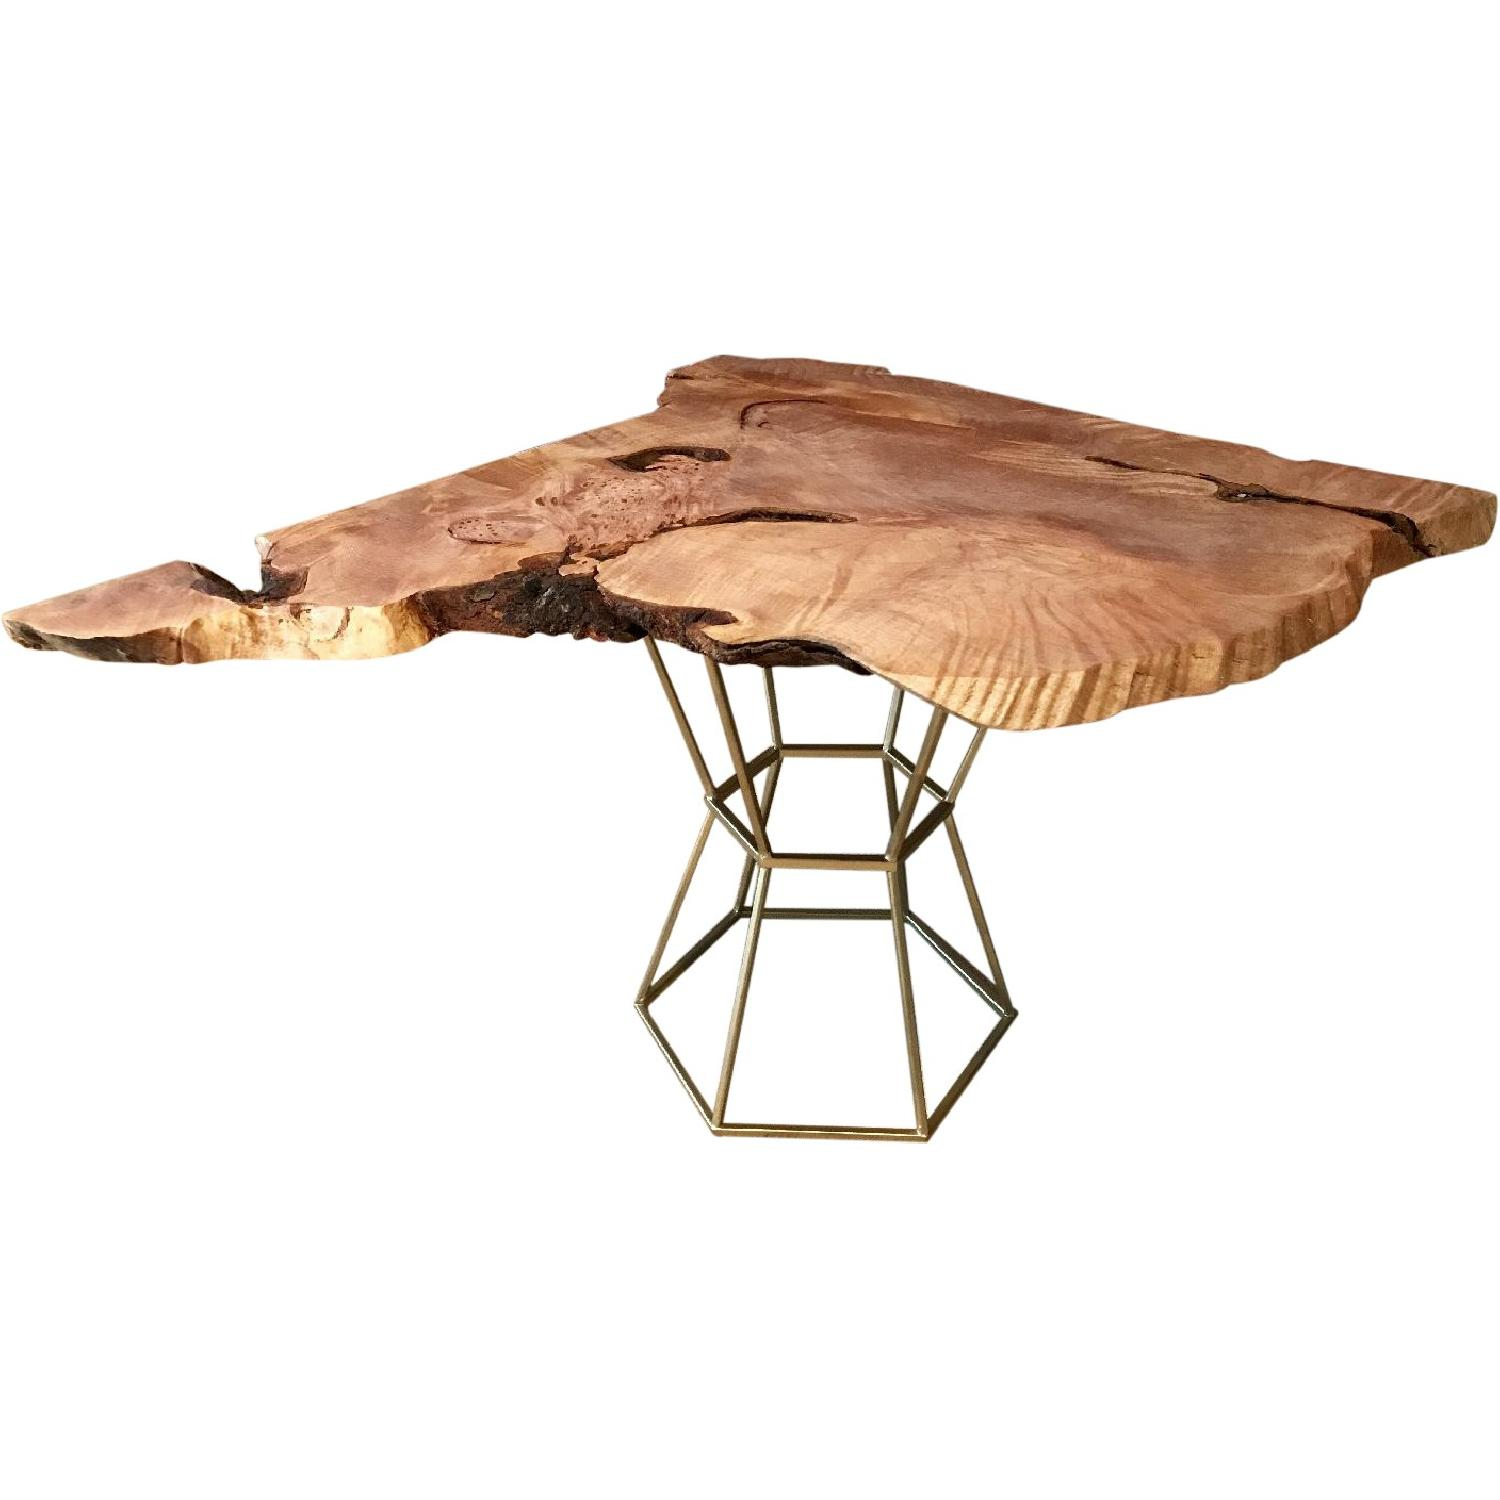 Modern Organic Table With Burl Wood Accents Rustic Coffee Table